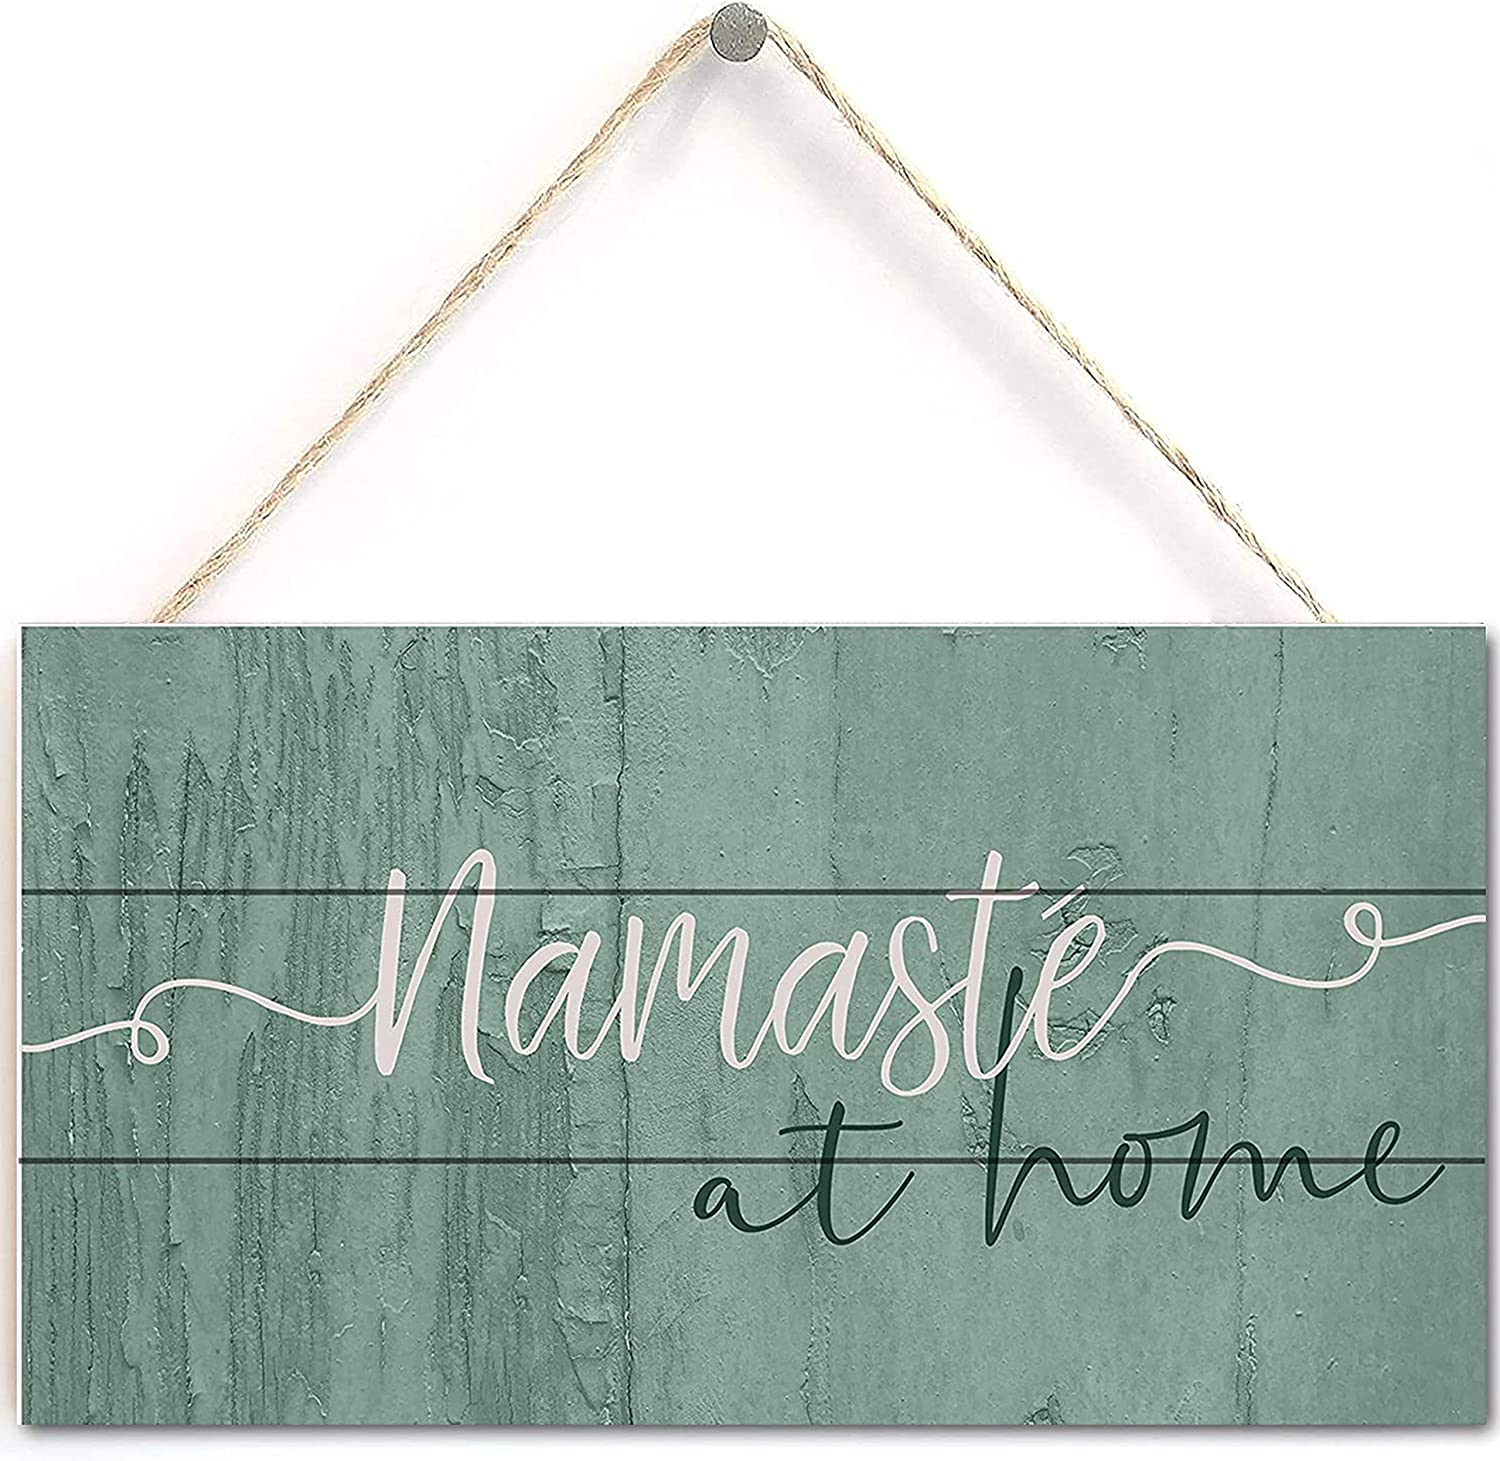 TOMATO FANQIE Wood Products Namaste at Home Wooden Plank Sign 5x10 inches (US-G029)